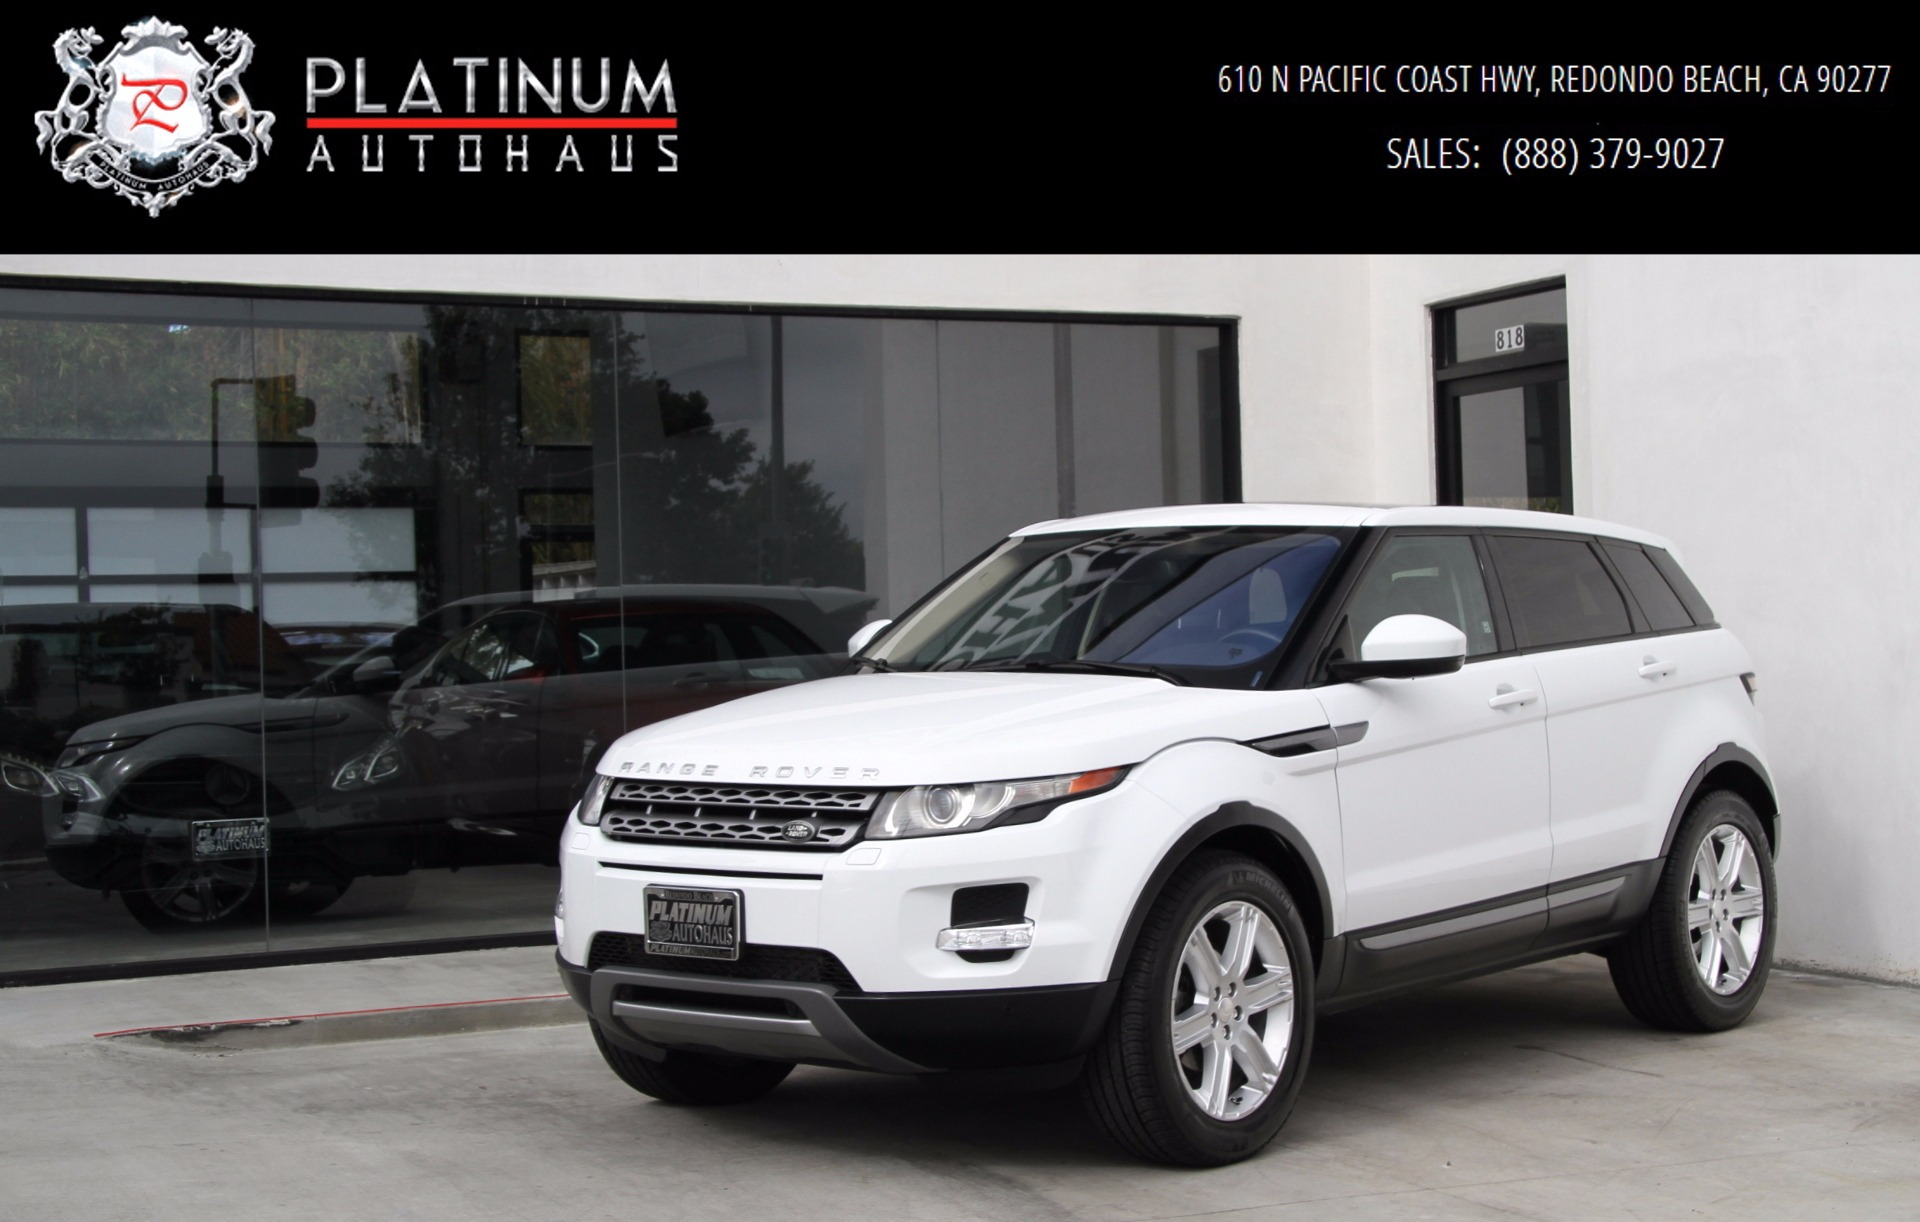 plus informations pure range rover articles land photos spec landrover makes european evoque h